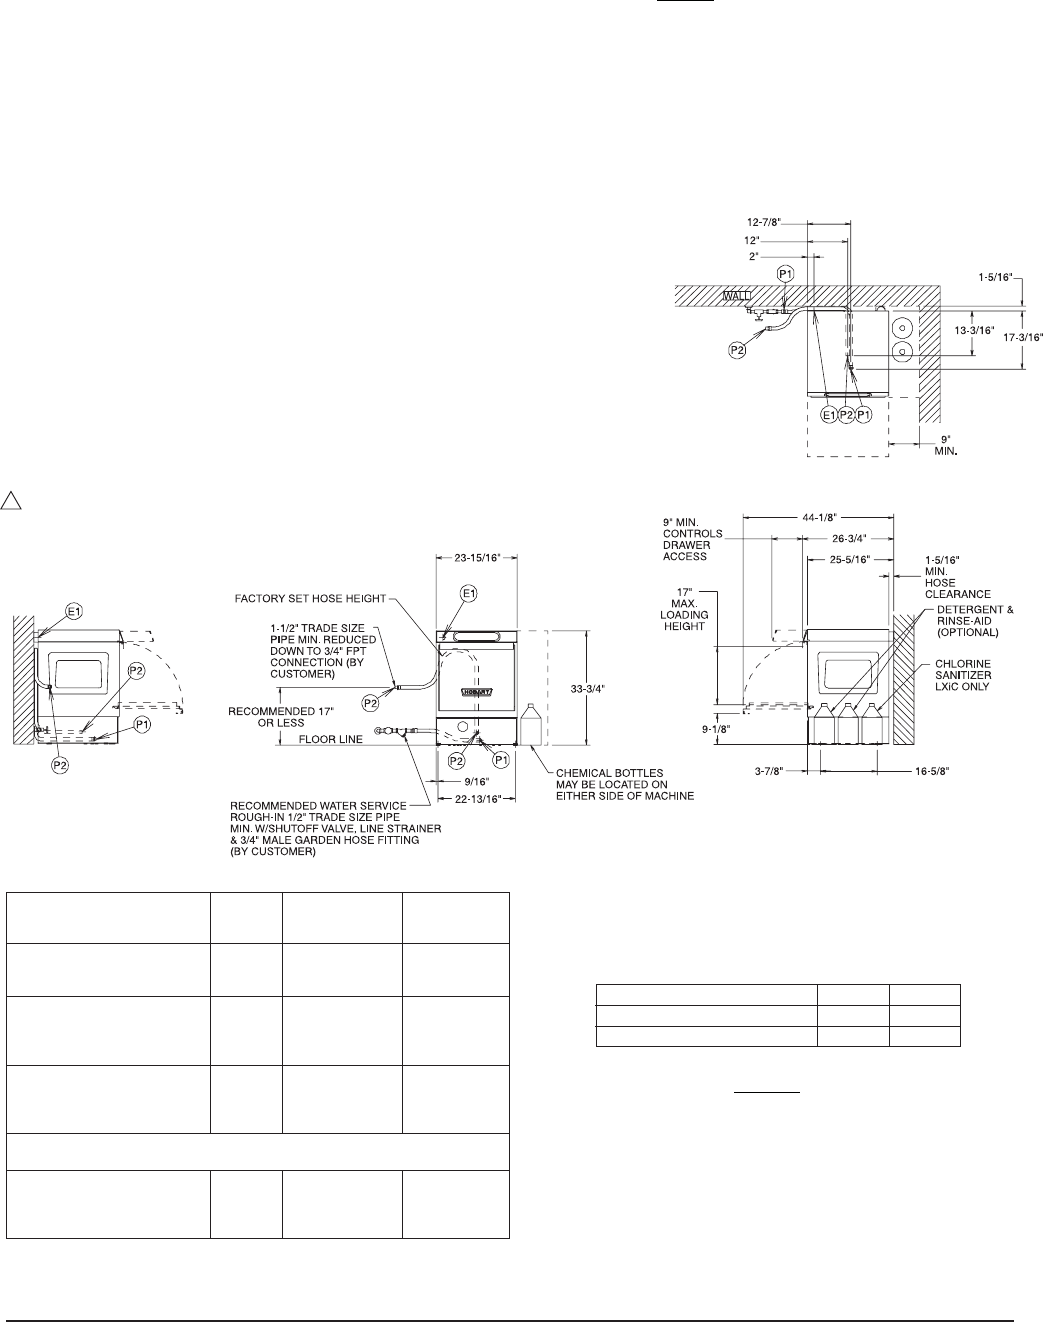 page 10 of hobart dishwasher lxih ml 130017 user guide 10 installation diagram